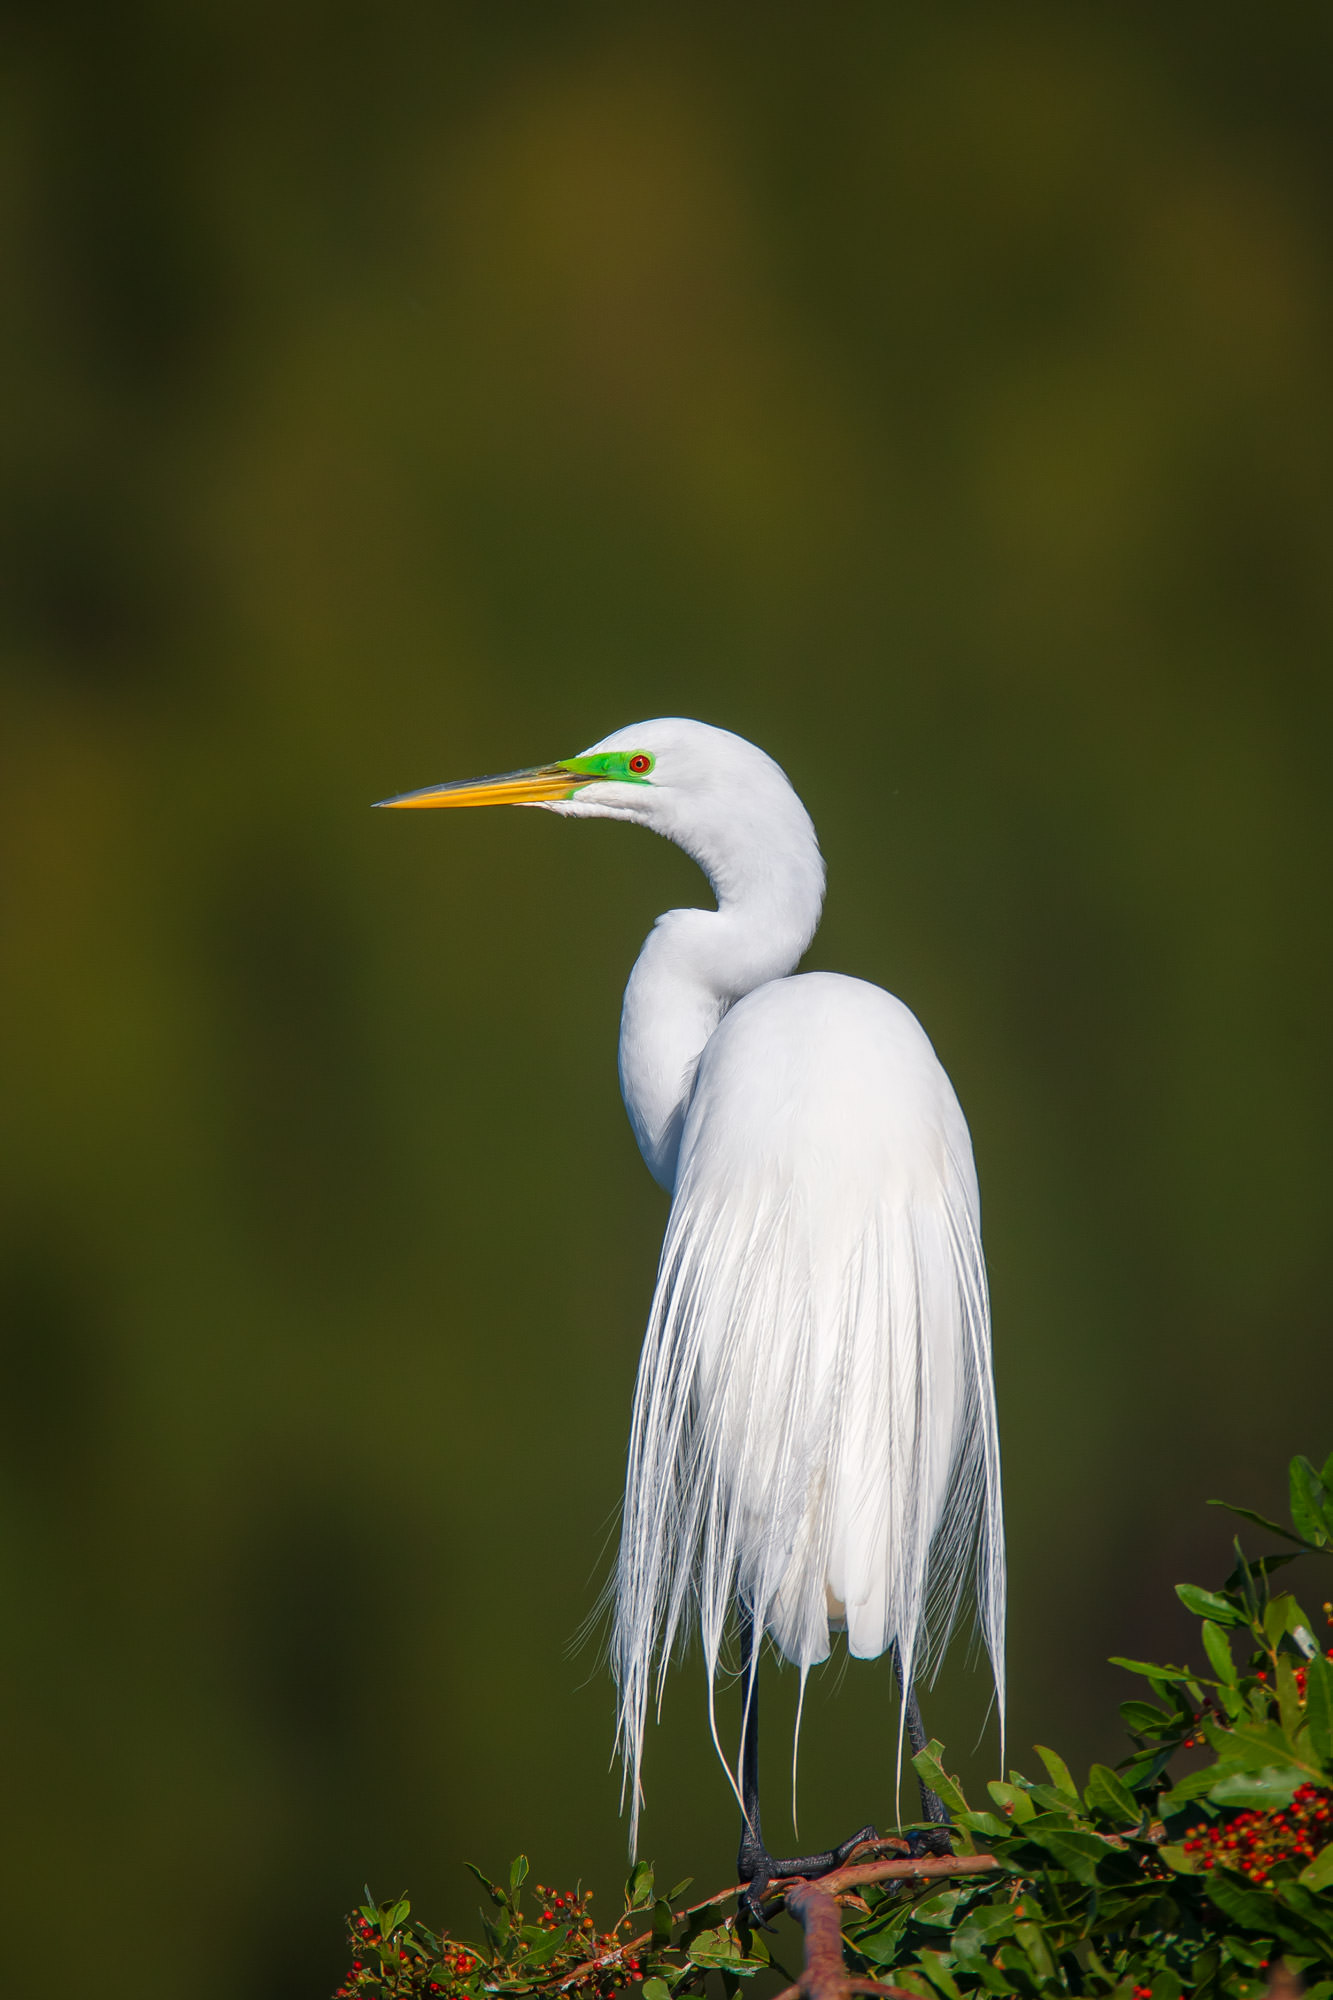 Egret, Great Egret, Florida, photo